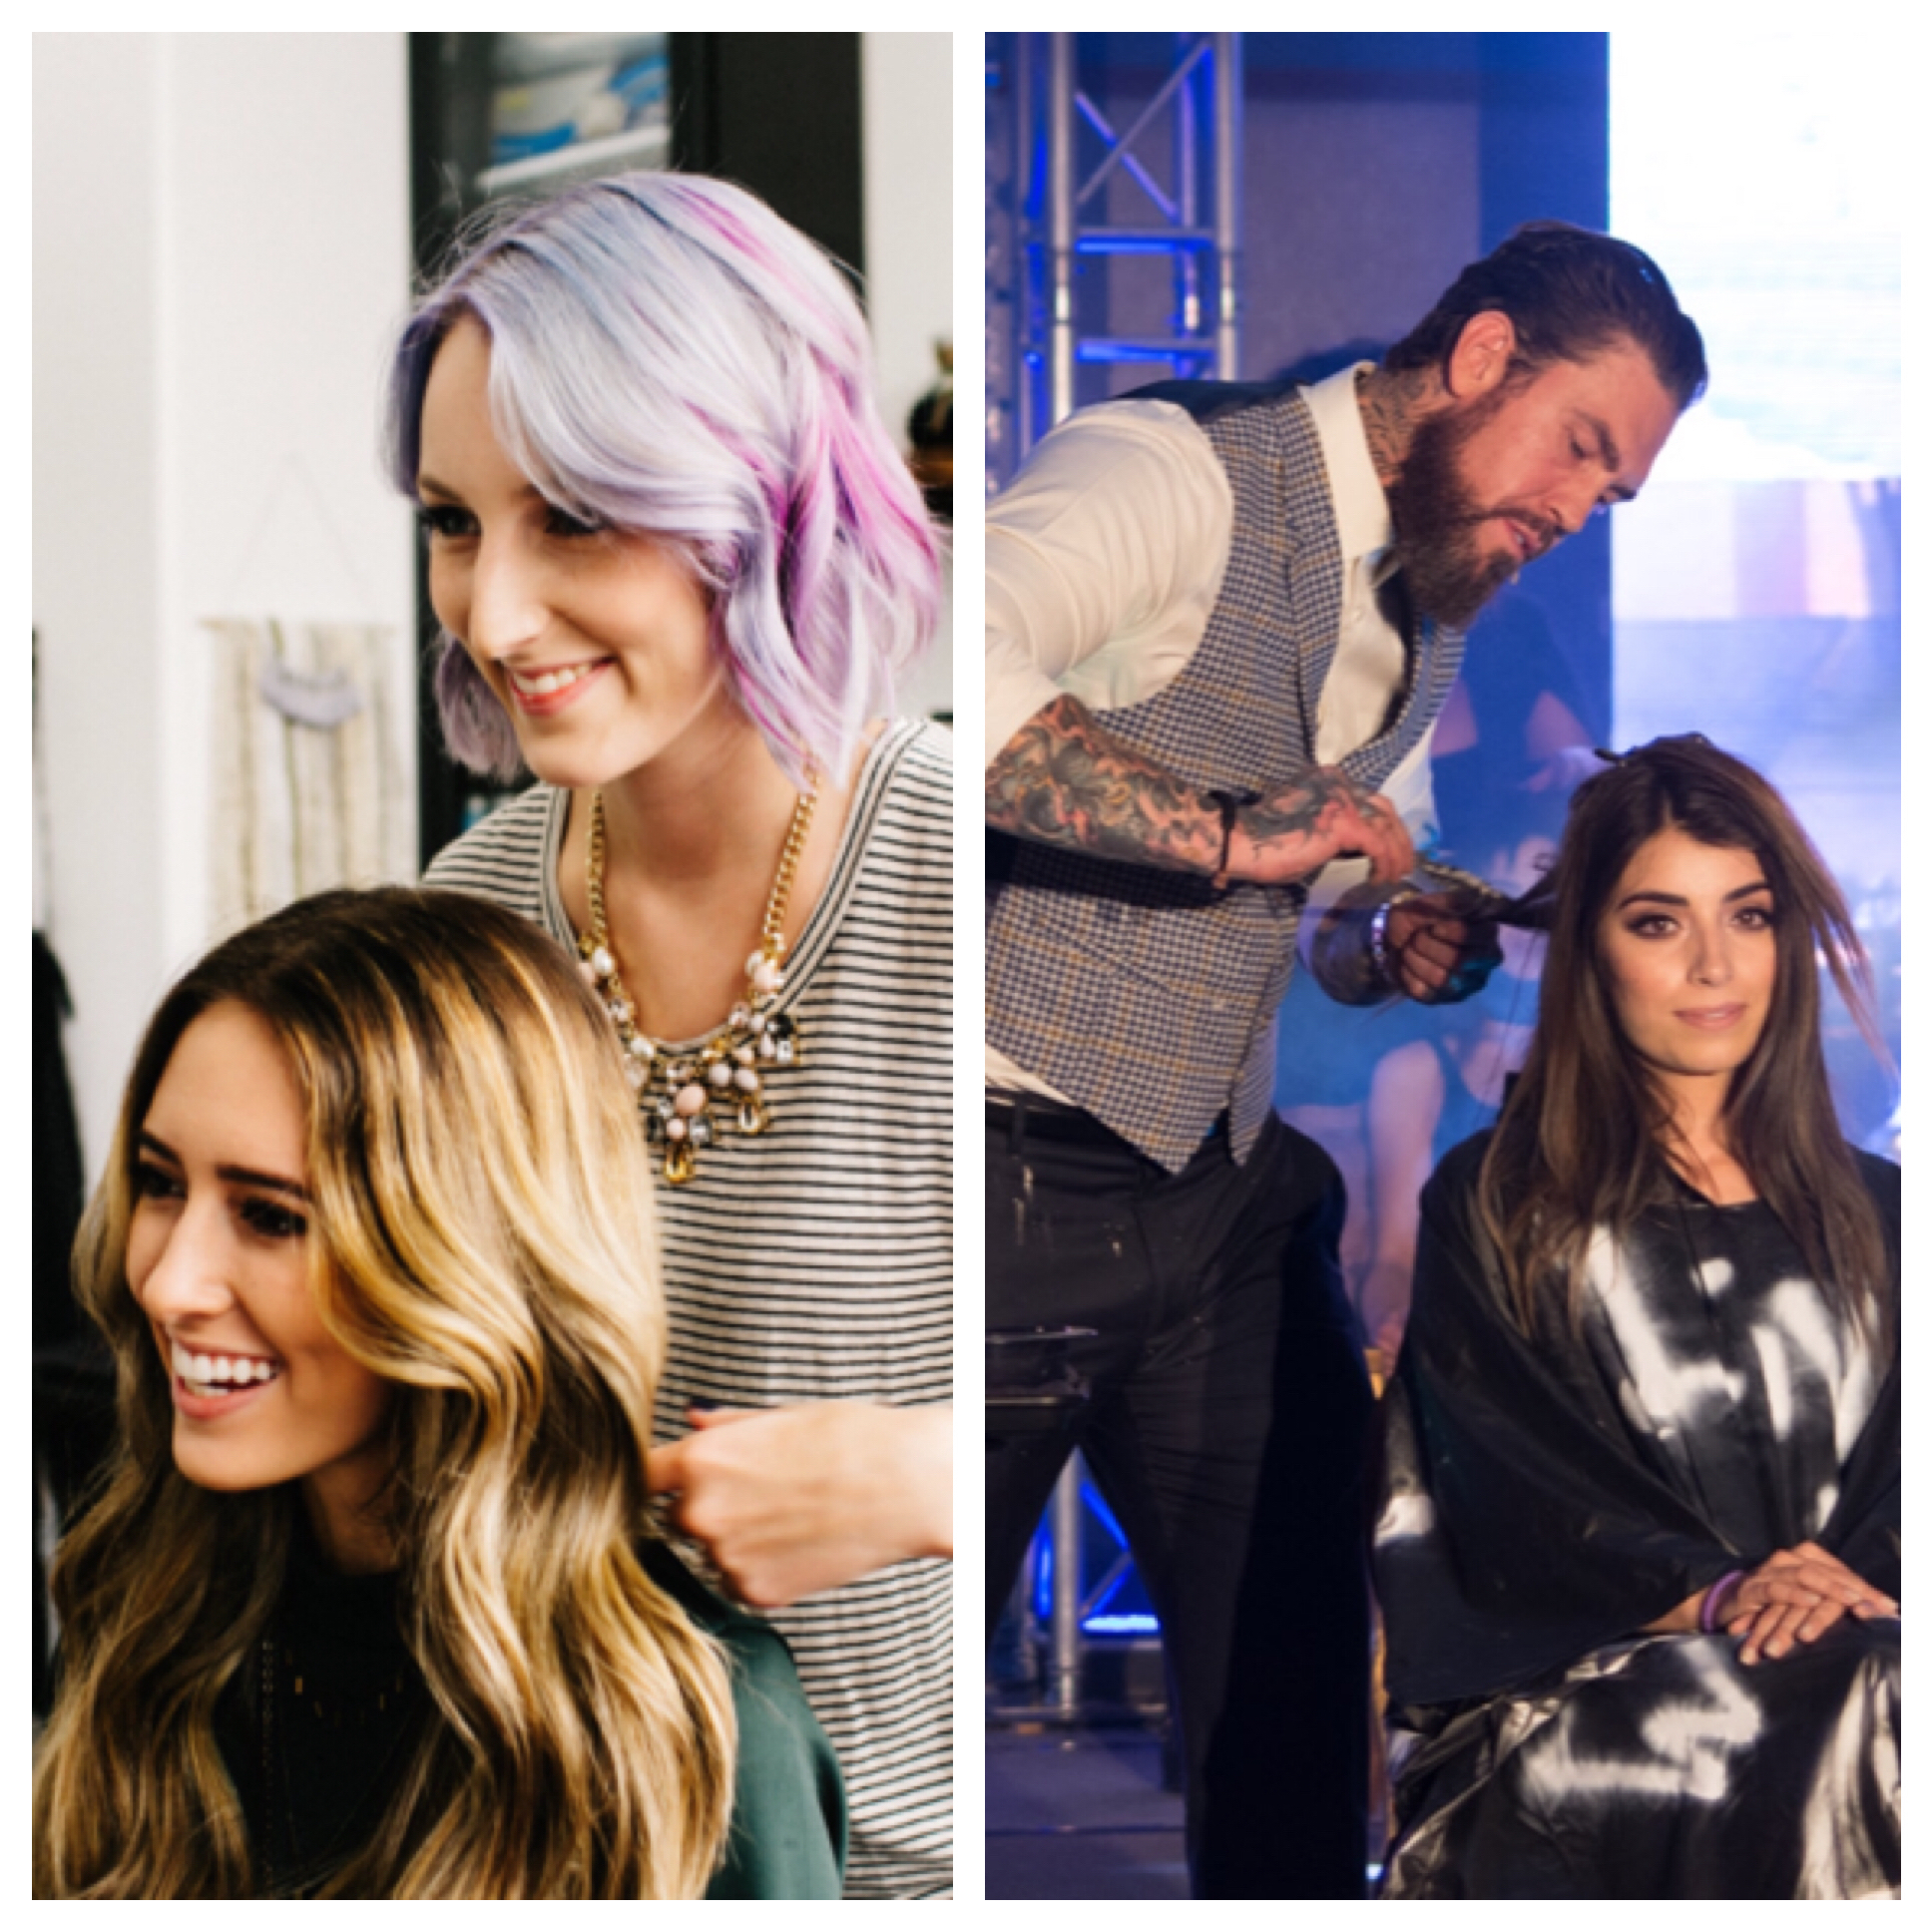 Social media-savvy Stylists Jamie Dana and Jay Wesley Olson are desiging Social Media Magic, a two-day workshop to help stylists, salon owners and managers develop a social media brand and cultivate a community.